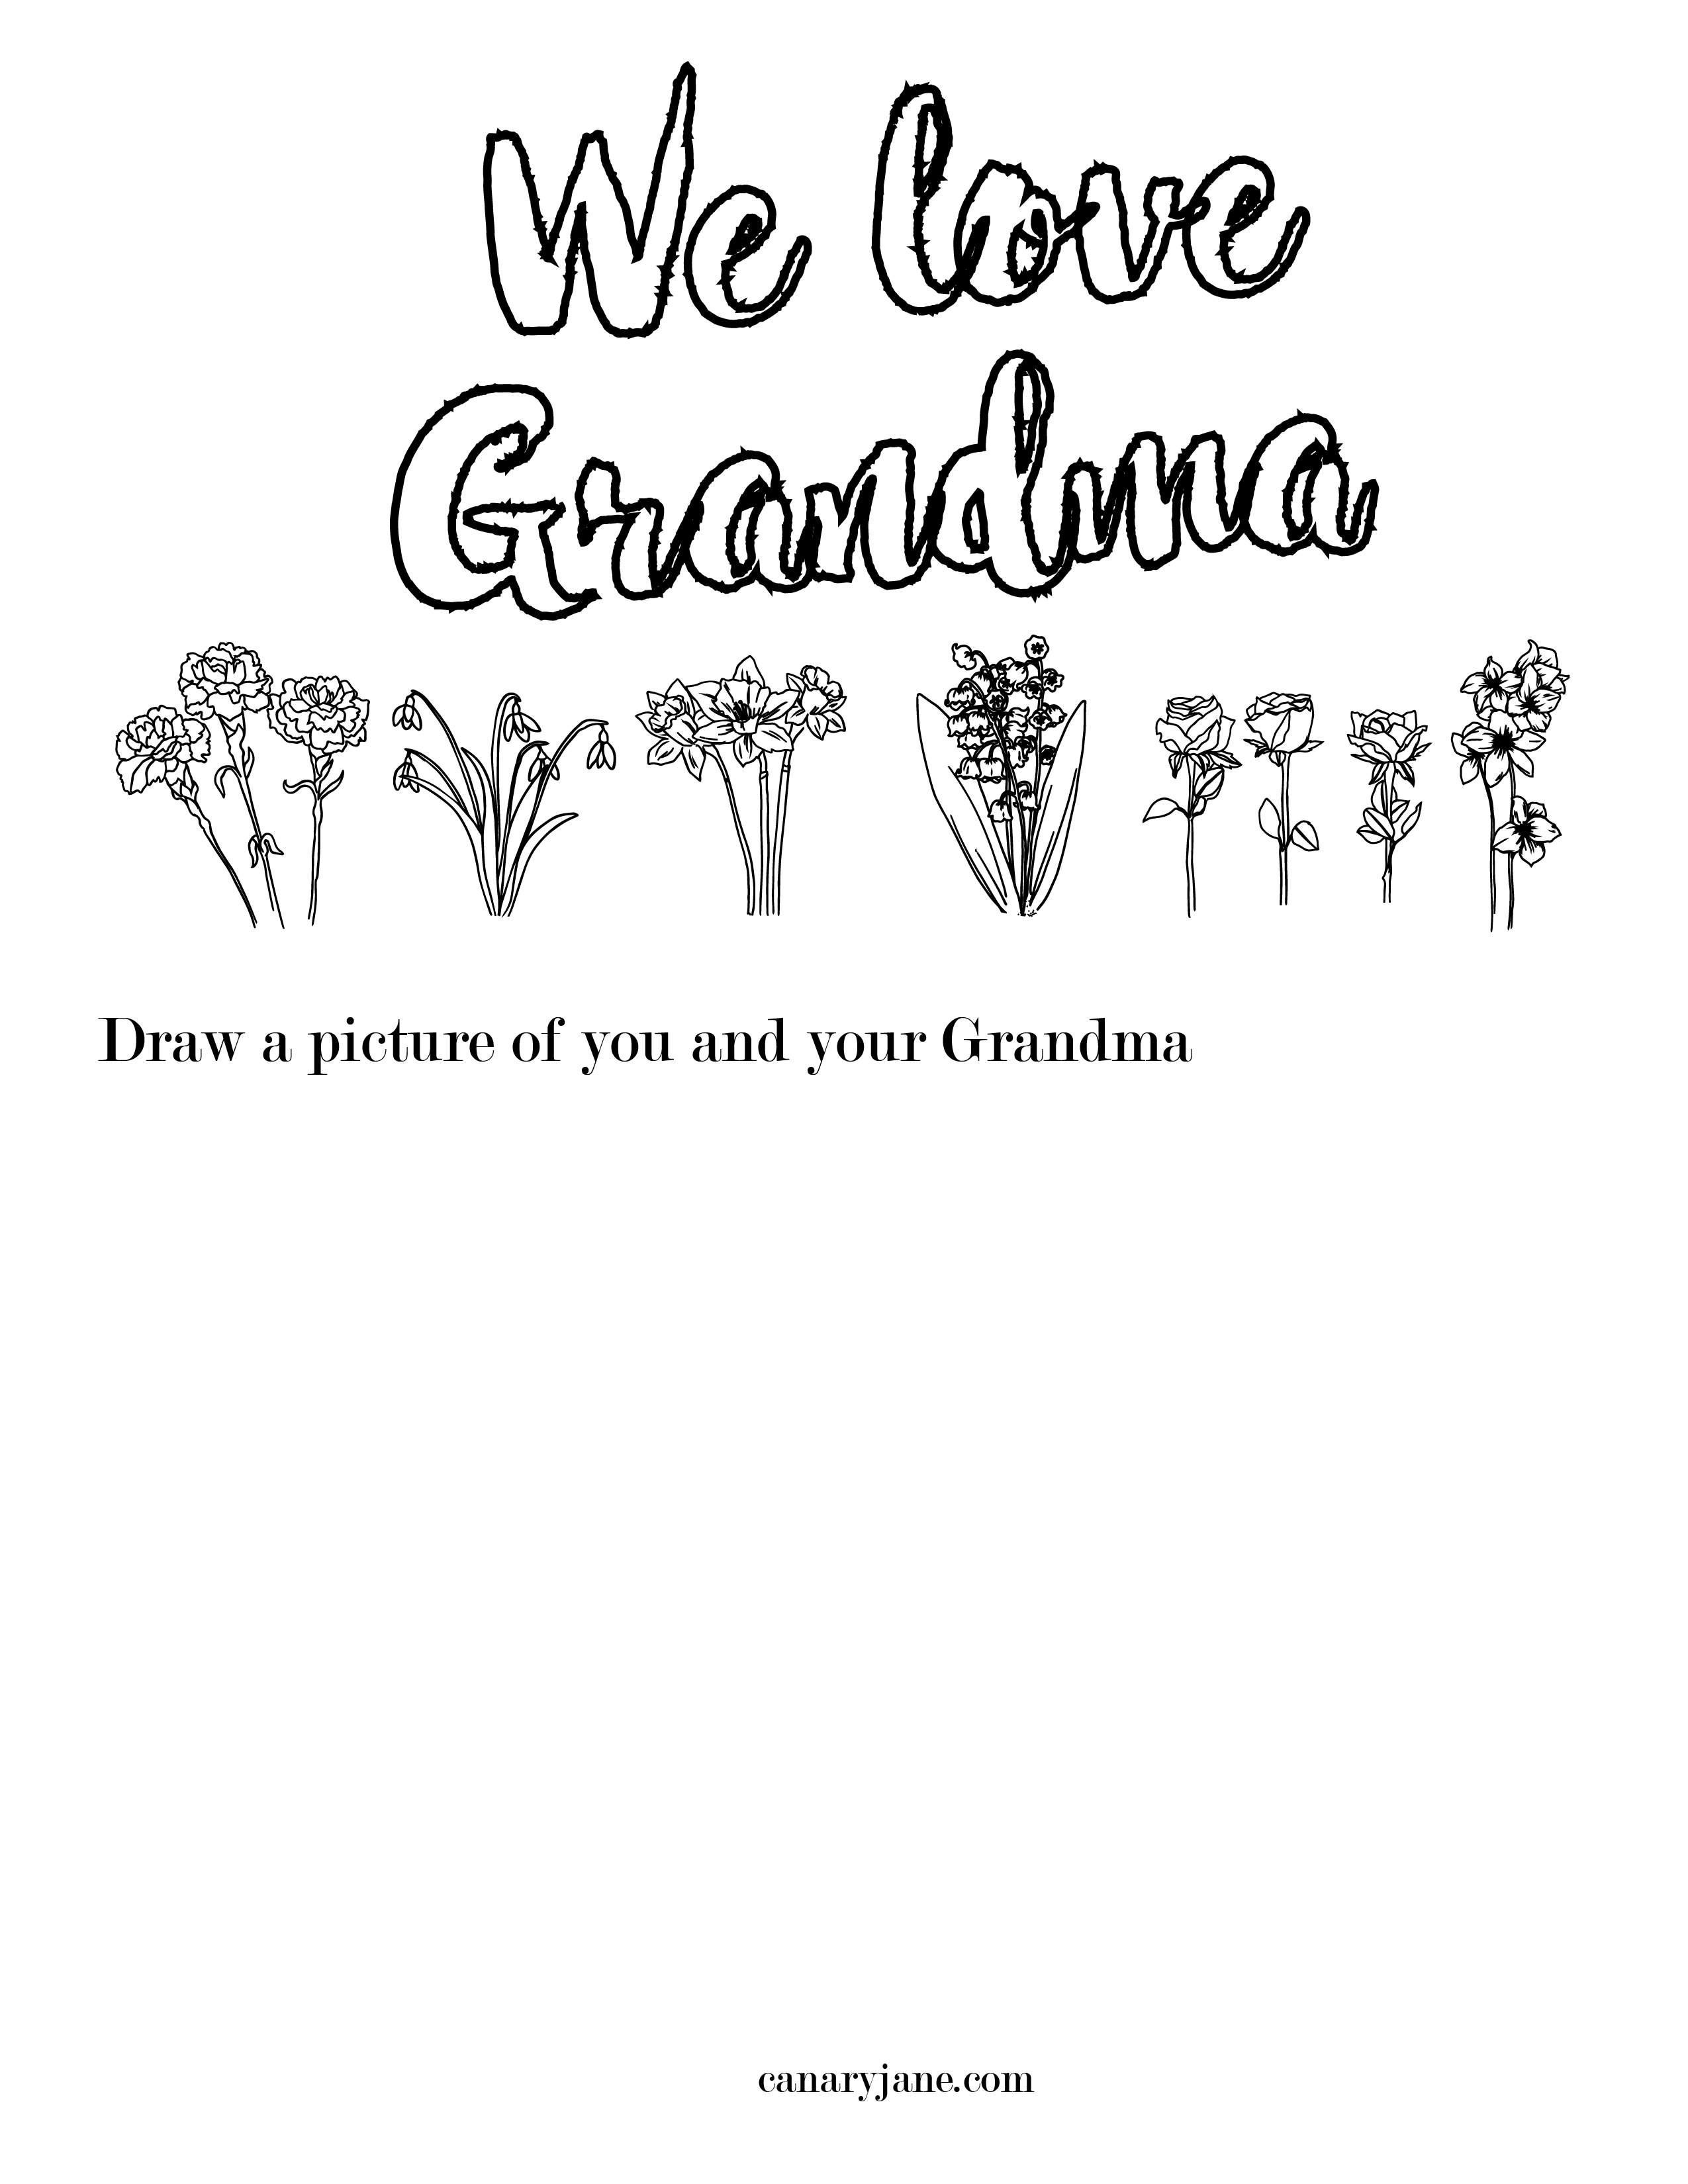 Grandma Worksheet